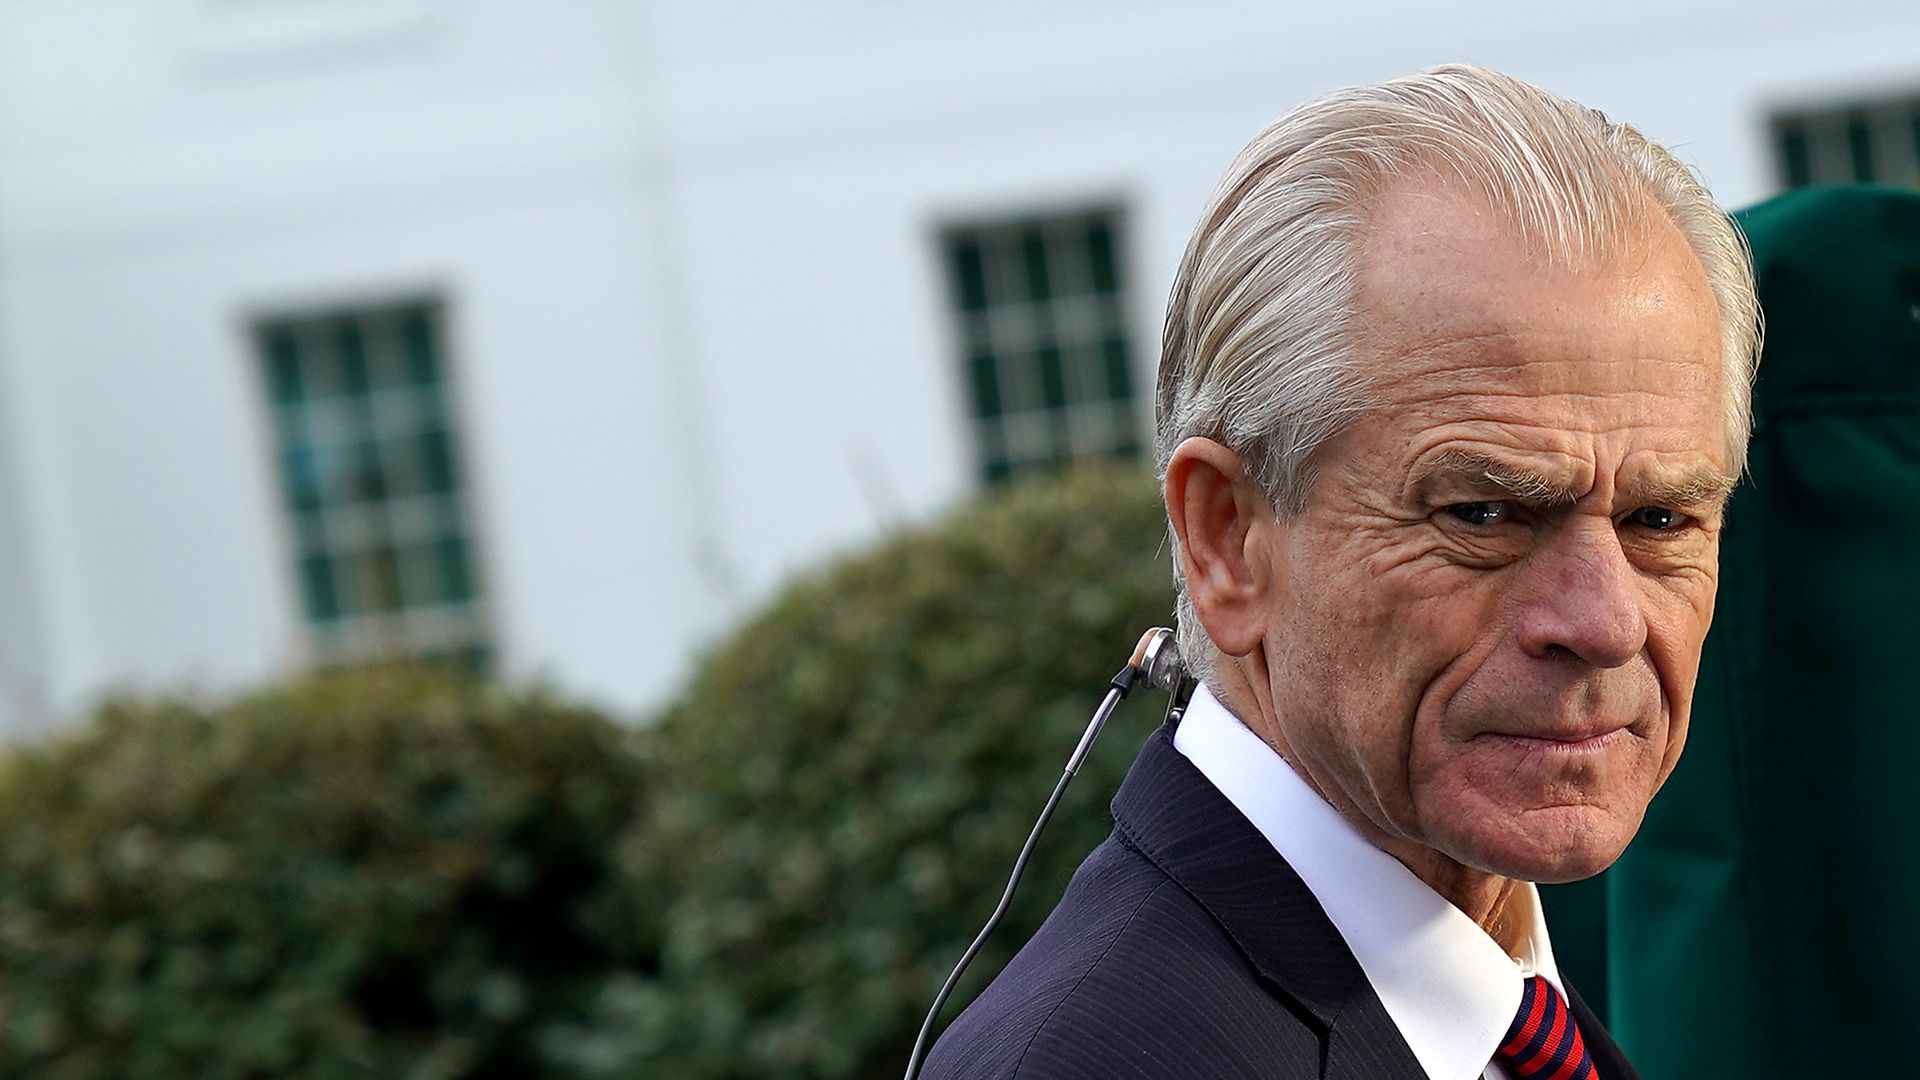 Top Trump trade adviser Peter Navarro quoted a made-up economist in his books on China